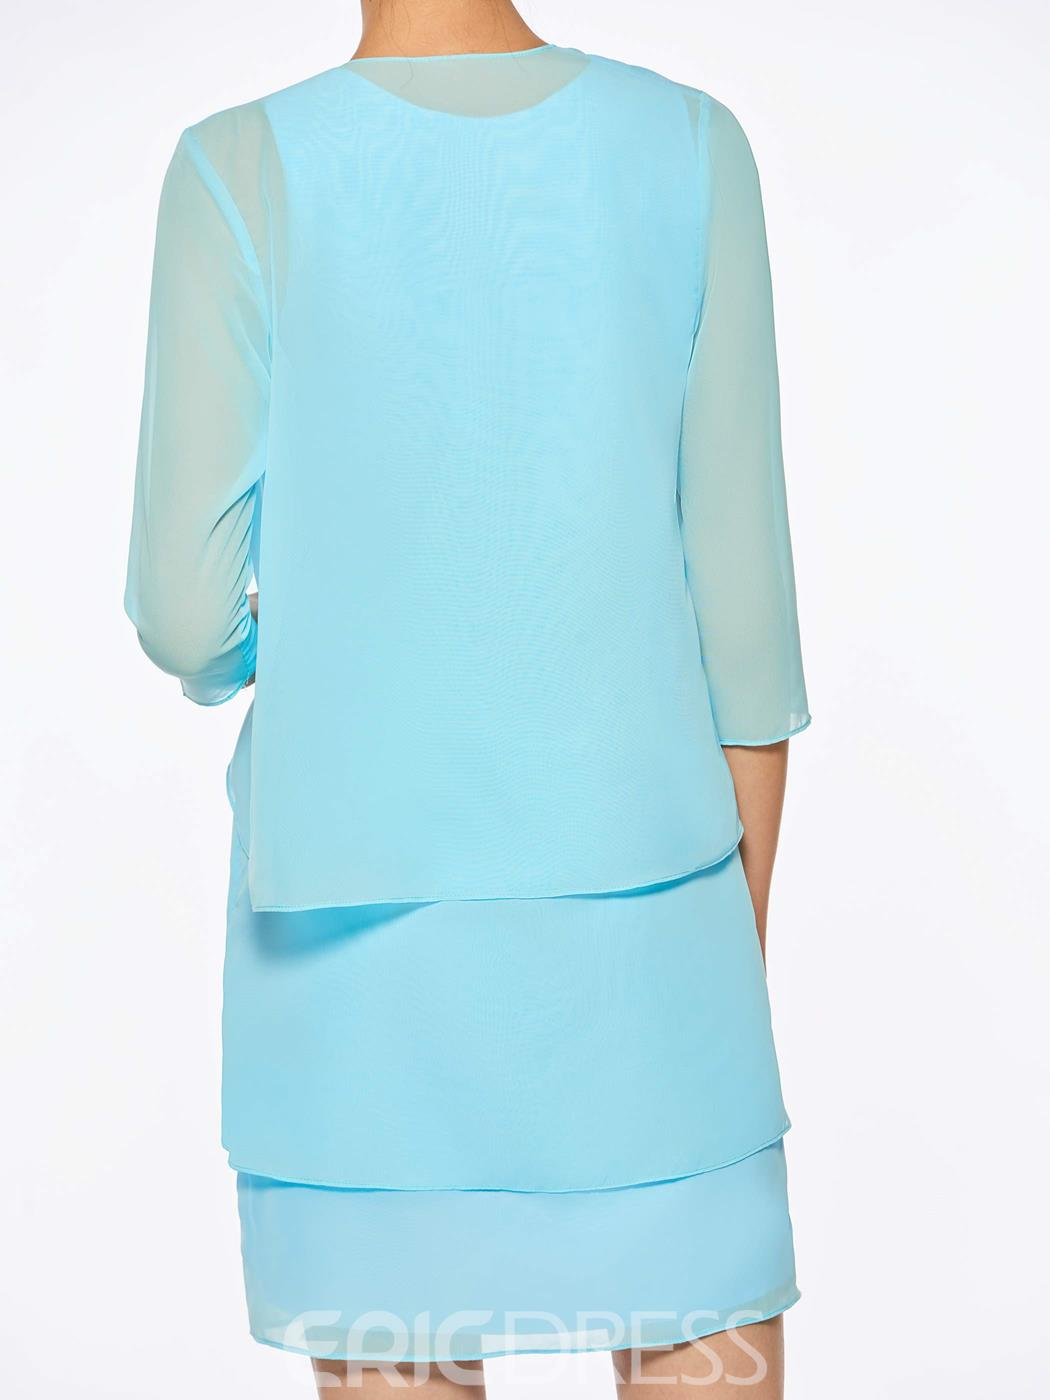 Ericdress Chiffon Short Mother of The Bride Dress with Half Sleeves Jacket